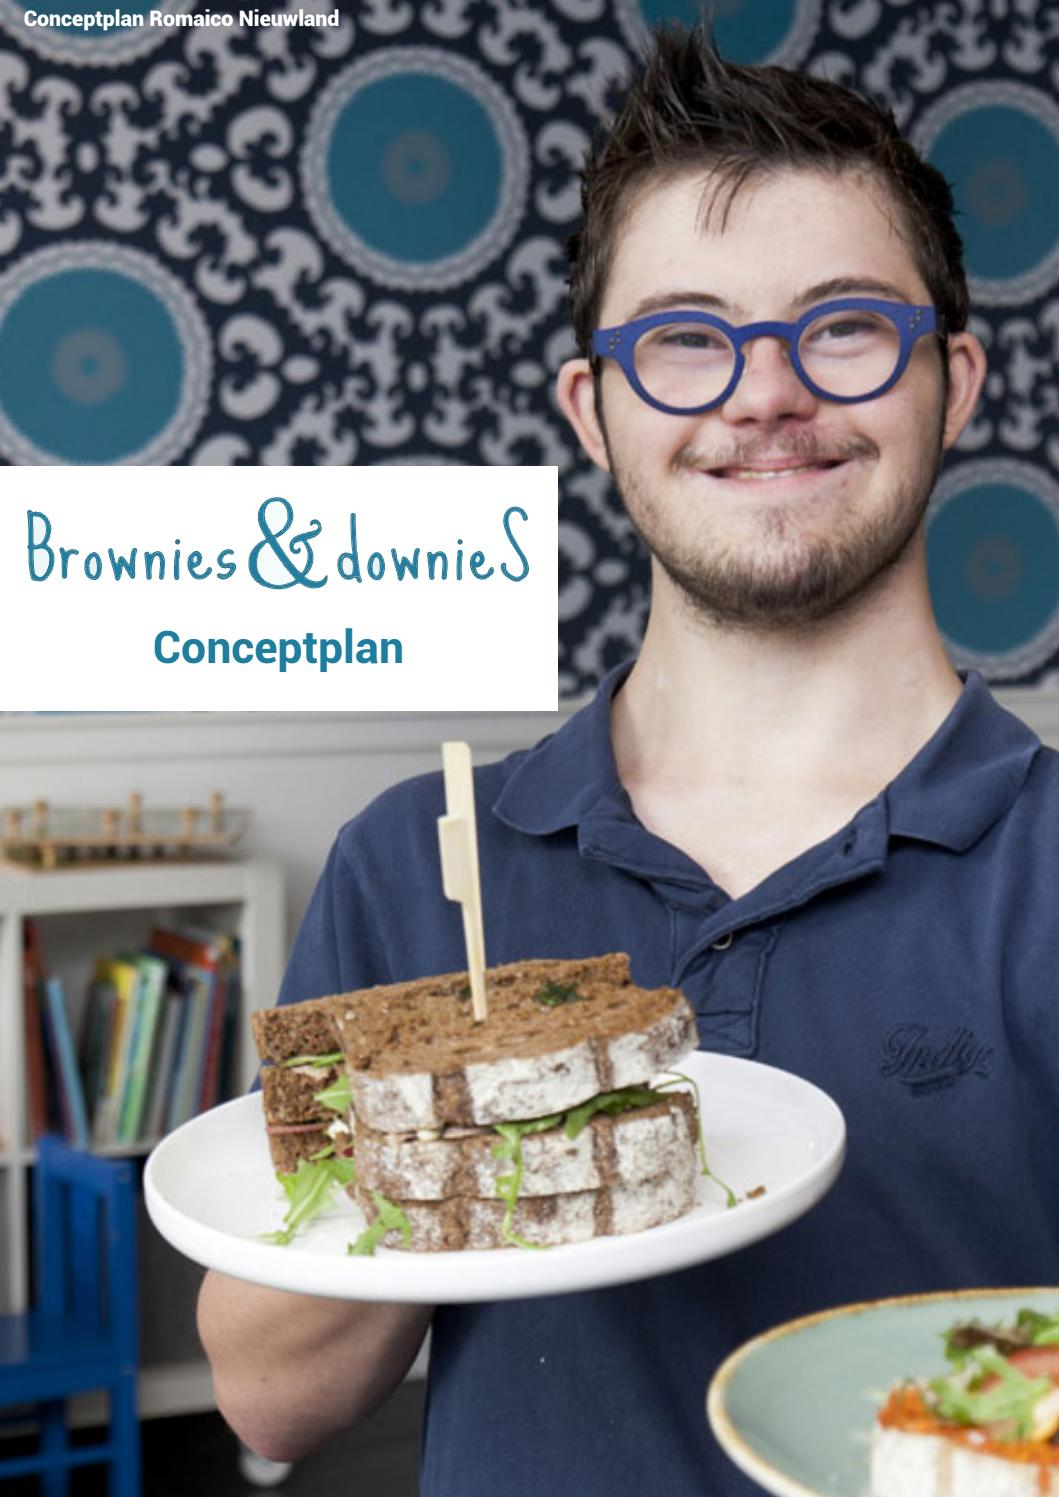 Downies In De Keuken Conceptplan Brownies Downies By Romaico Nieuwland Issuu